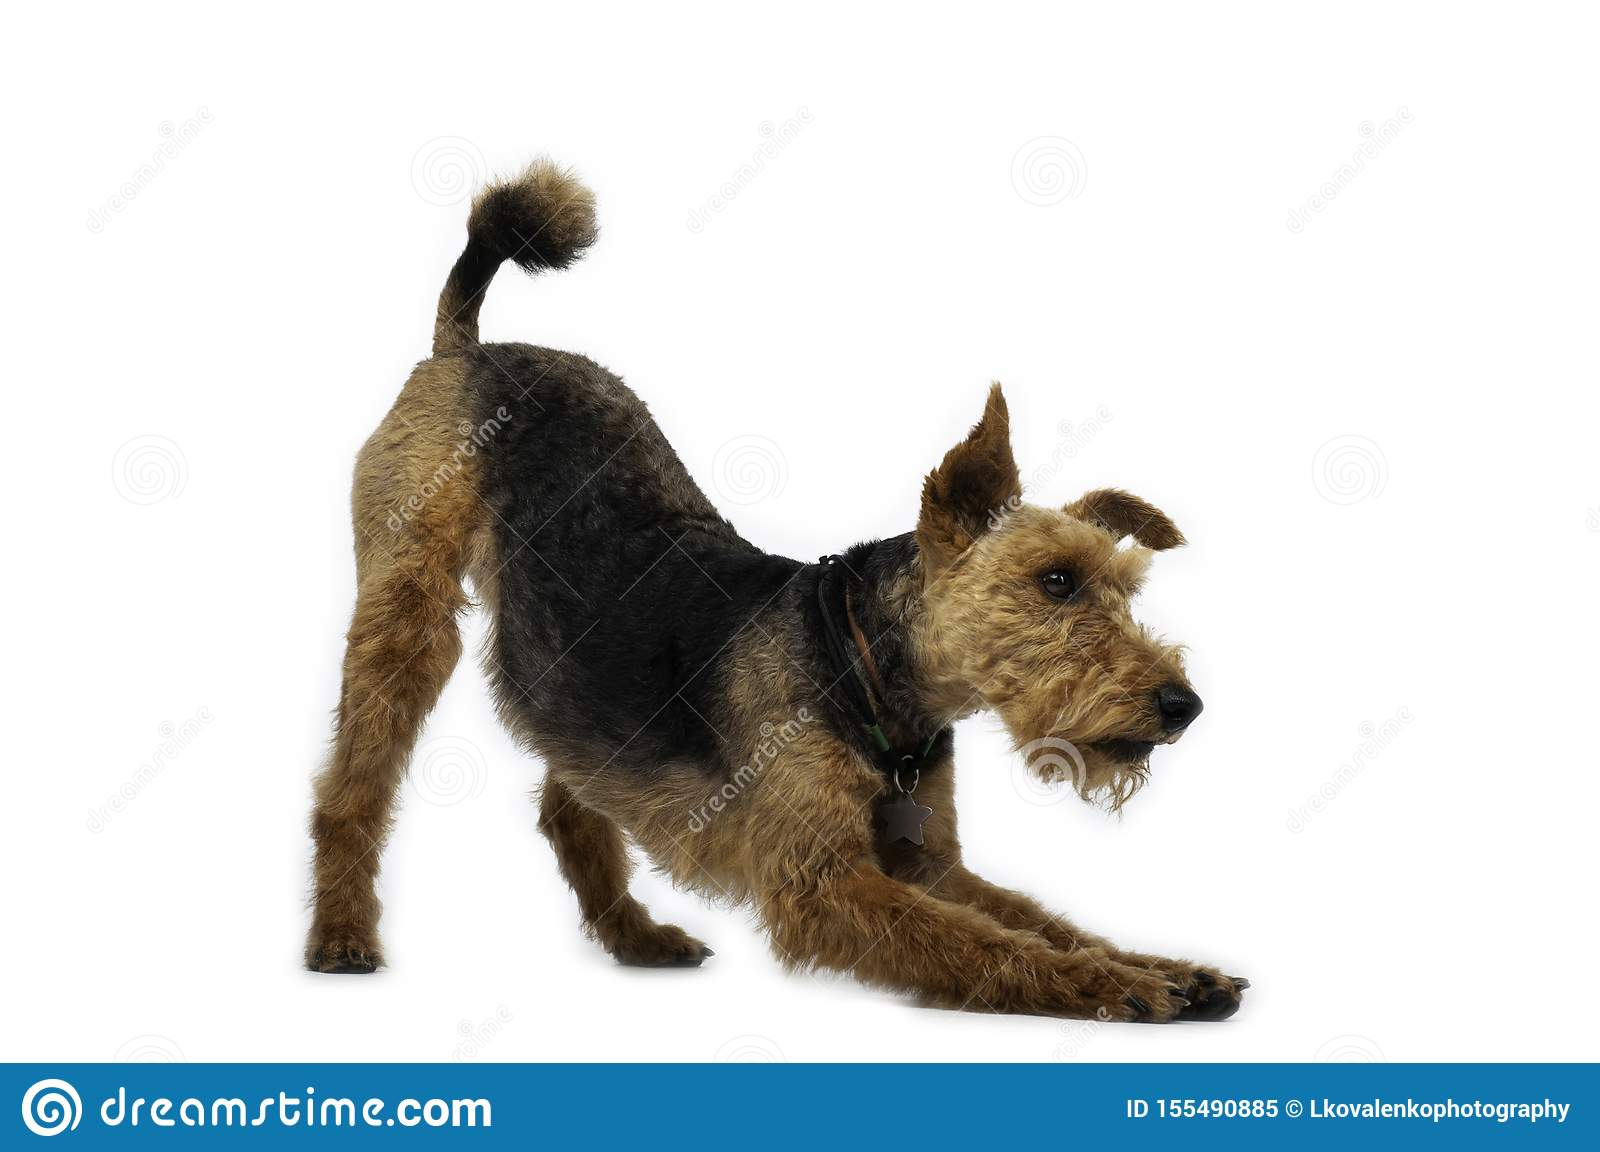 Welsh terrier dog is standing in a pose on white background